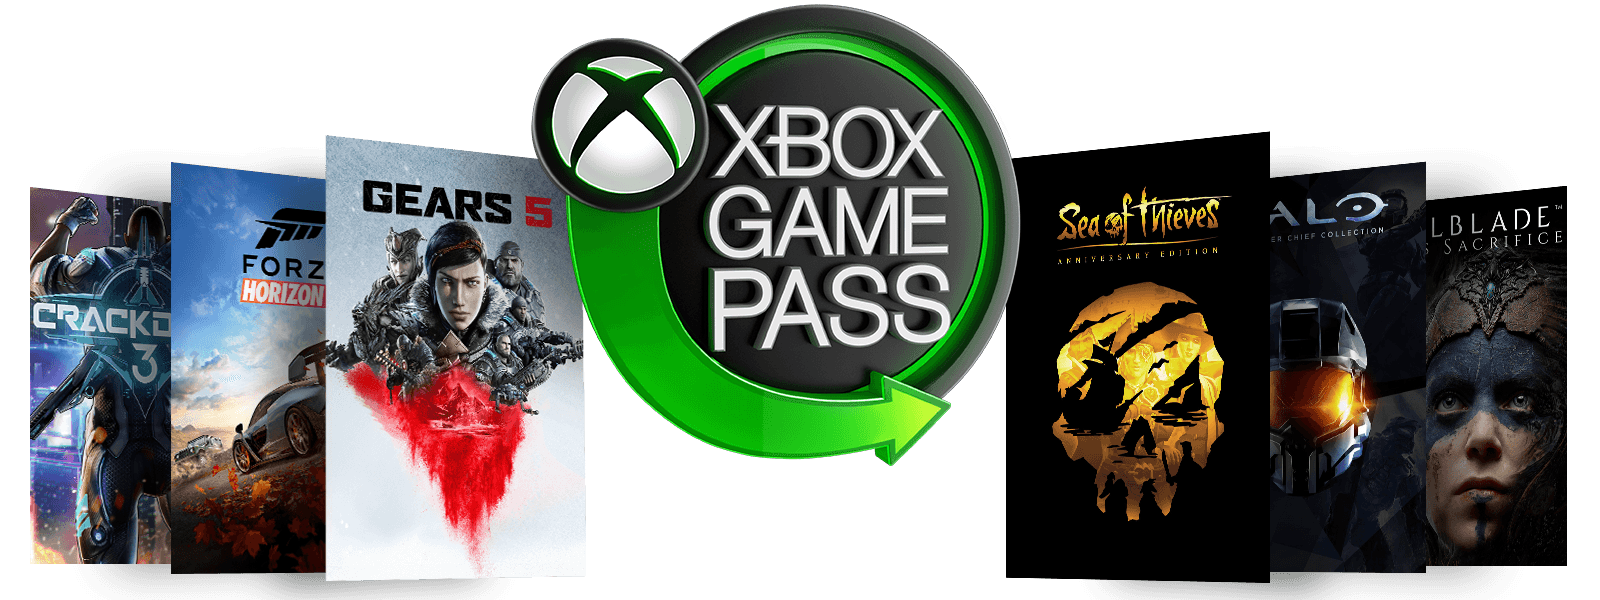 Neon Xbox Game Pass logo surrounded by box art for Forza Horizon 4, Playerunknown Battleground, Crackdown 3, sea of thieves anniversary edition, halo and Hellbade: senua's sacrifice